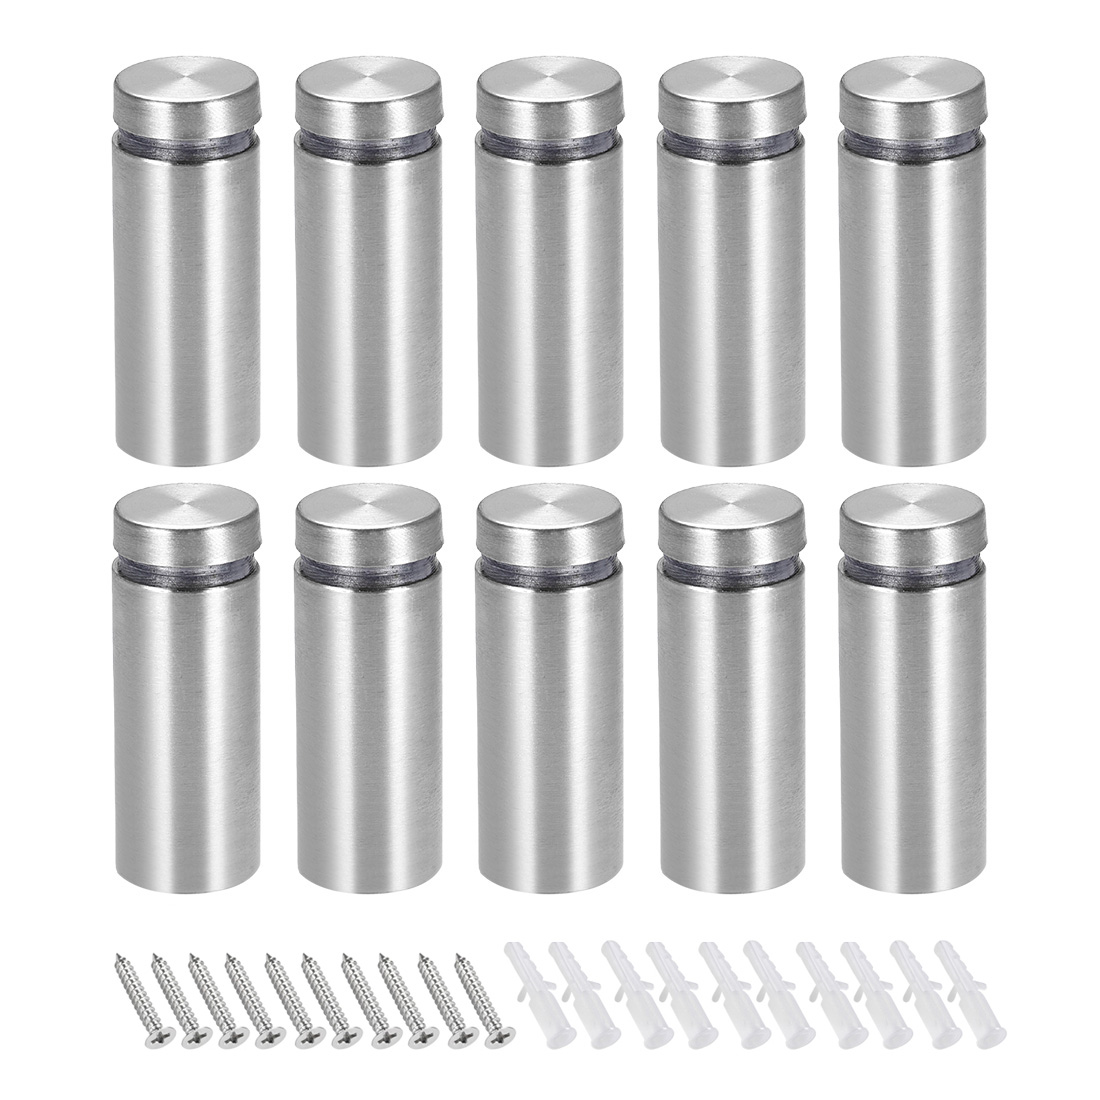 Glass Standoff Mount Stainless Steel Wall Standoff Holders 16mm x 42mm 10 Pcs